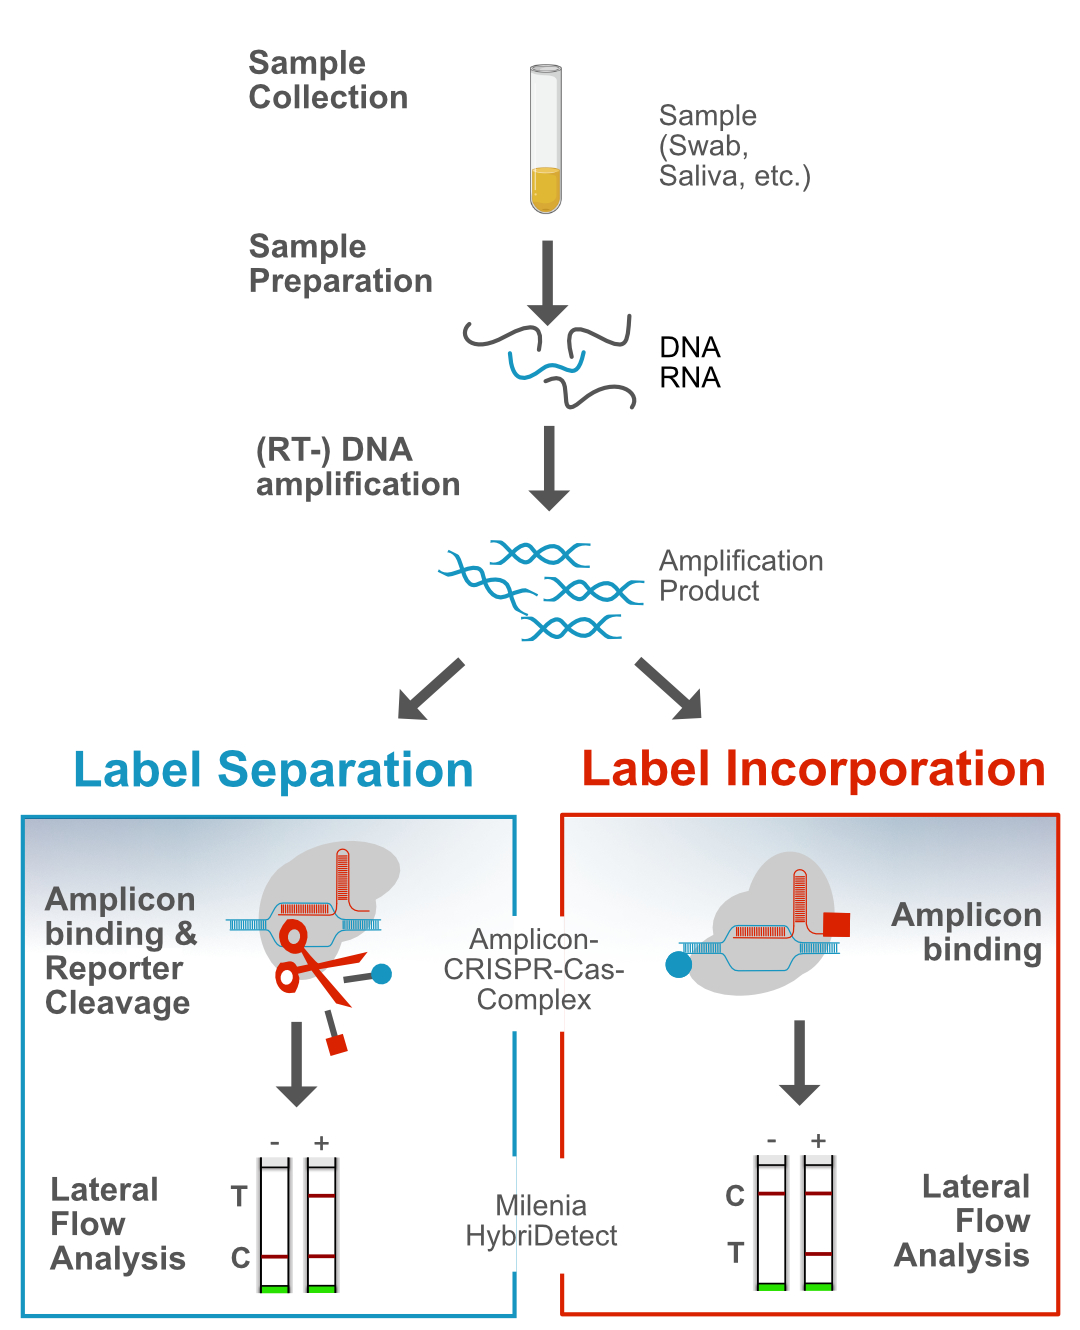 CRISPR-Cas and Lateral Flow: Workflow and 2 general detection strategies